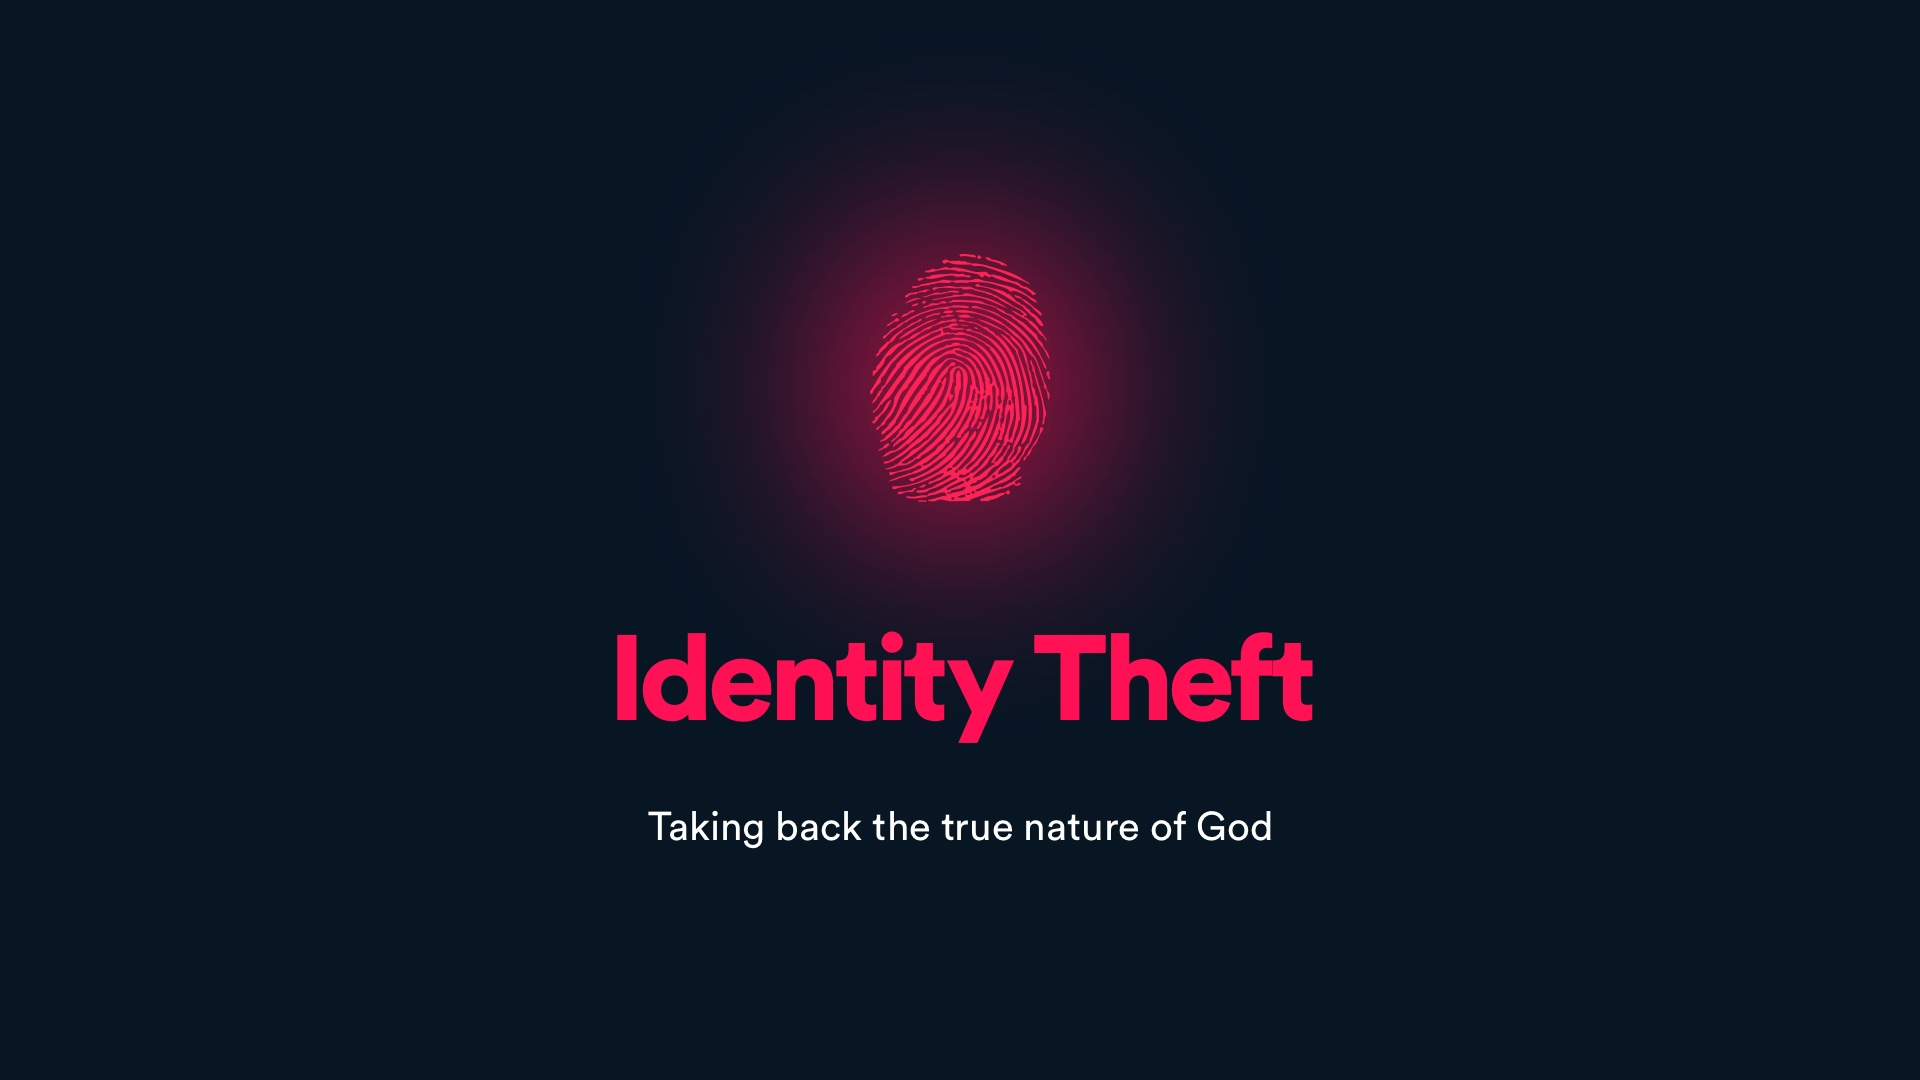 IdentityTheft-HD.jpg